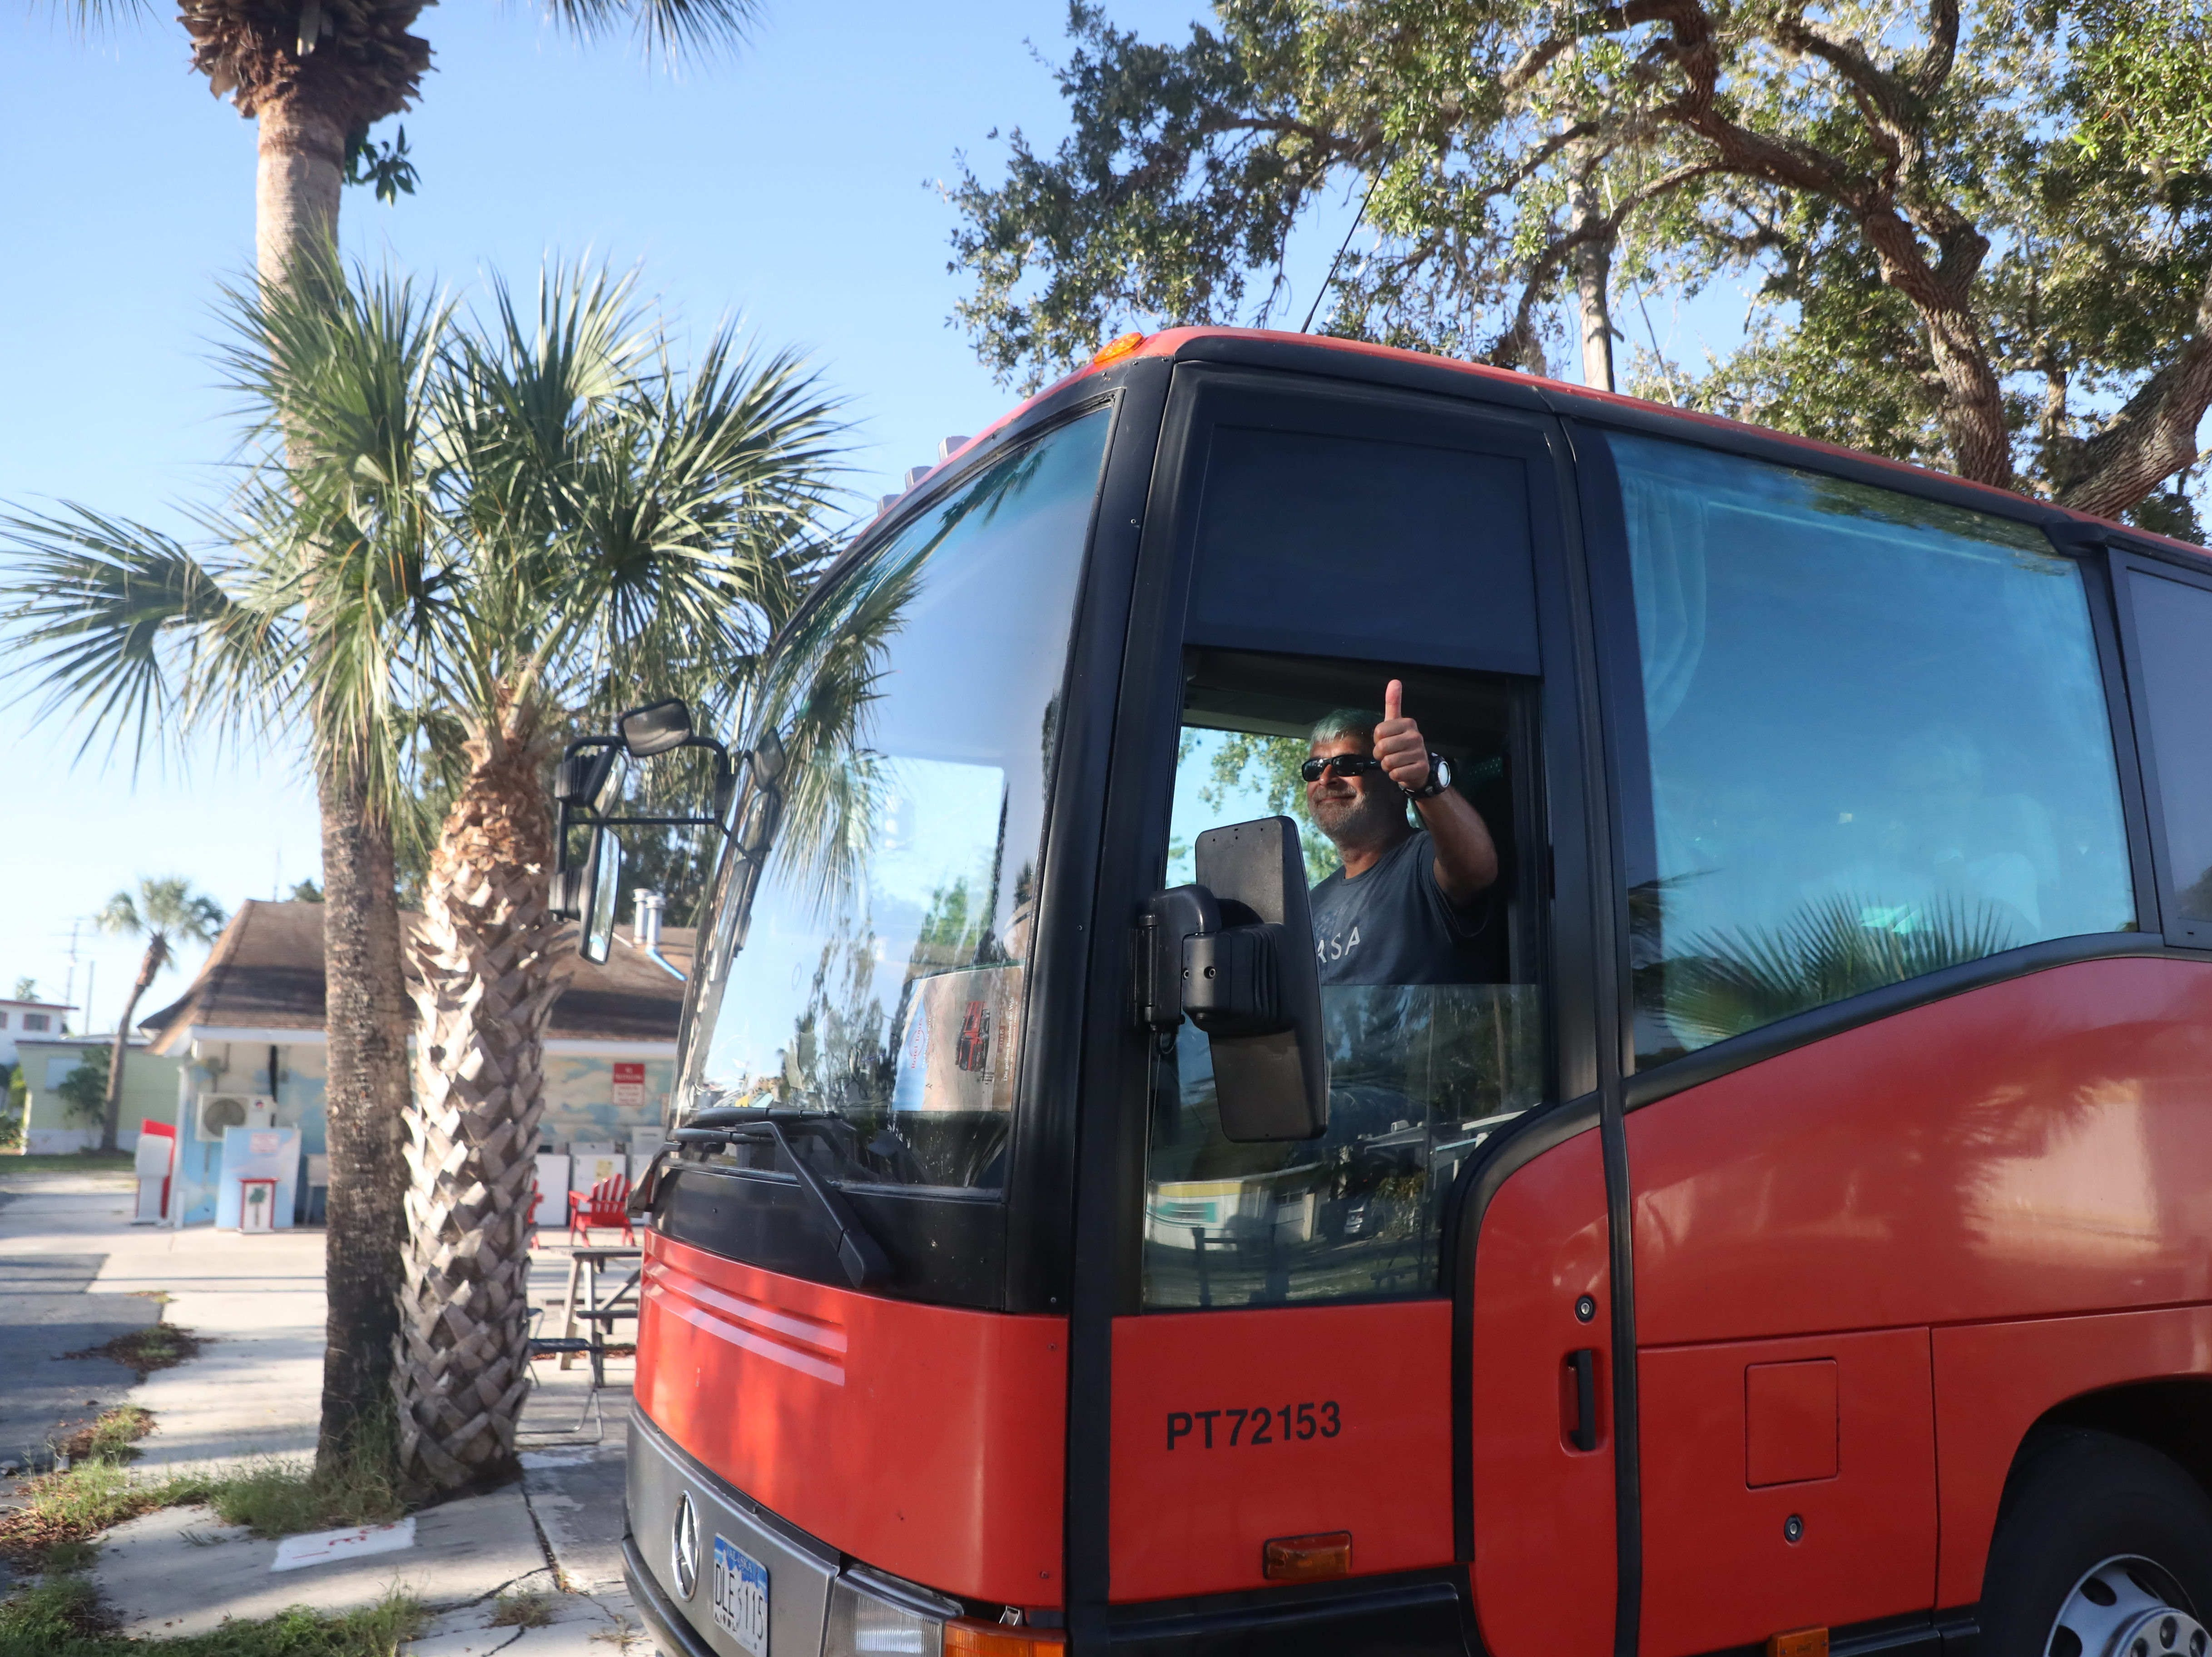 """A Rotel Tours bus rolled into the Red Coconut R.V. Resort full of tourists spending a couple of days enjoying Southwest Florida. The """"Rolling Hotel"""" company travels worldwide. Travelers sit in coach bus seats by day and sleep in small cabins that are stacked on top of each other by night."""